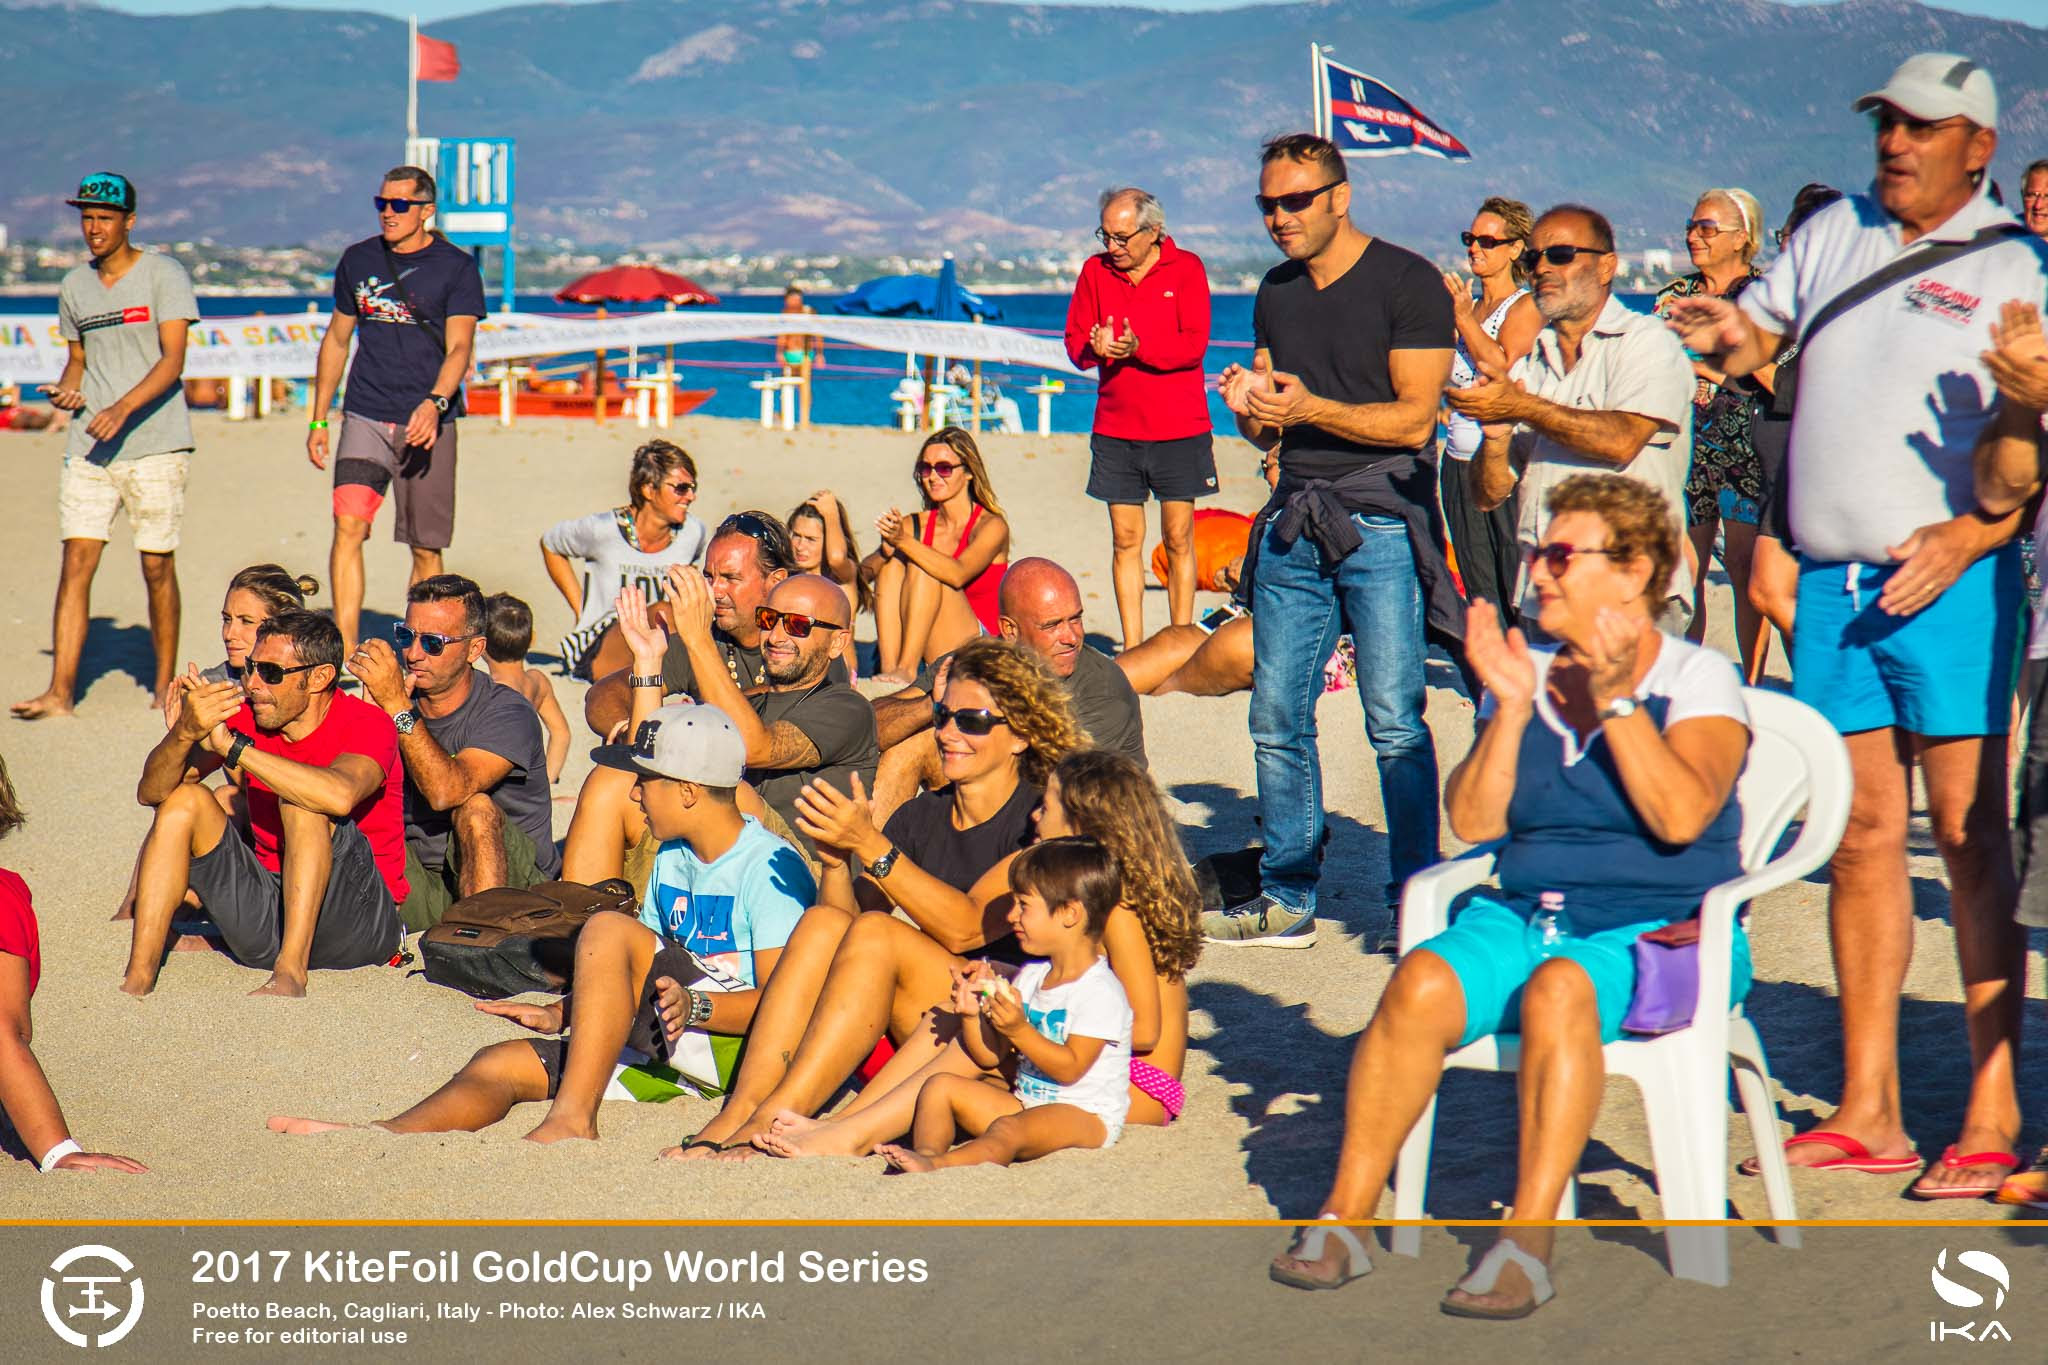 1346a5bd 5750 4797 bd9e 3e6ae9aaf5b8 - Final day of racing at KiteFoil World Championships